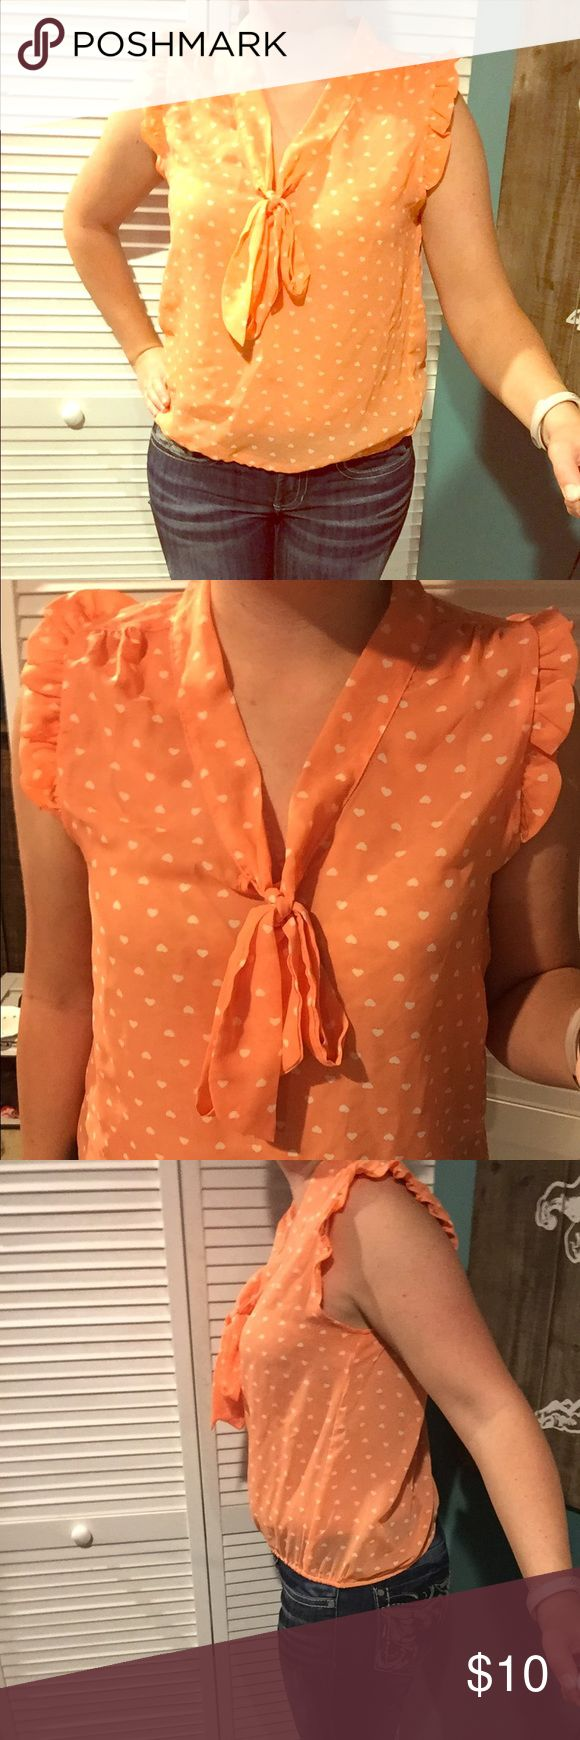 Orange blouse Orange sleeveless blouse with small white hearts. Ruffles around arm holes and small tie at the neck hemline. Elastic band at bottom hemline. I suggest wearing a tank or cami underneath. Worn several times but no marks and is clean. Eyelash Couture Tops Blouses